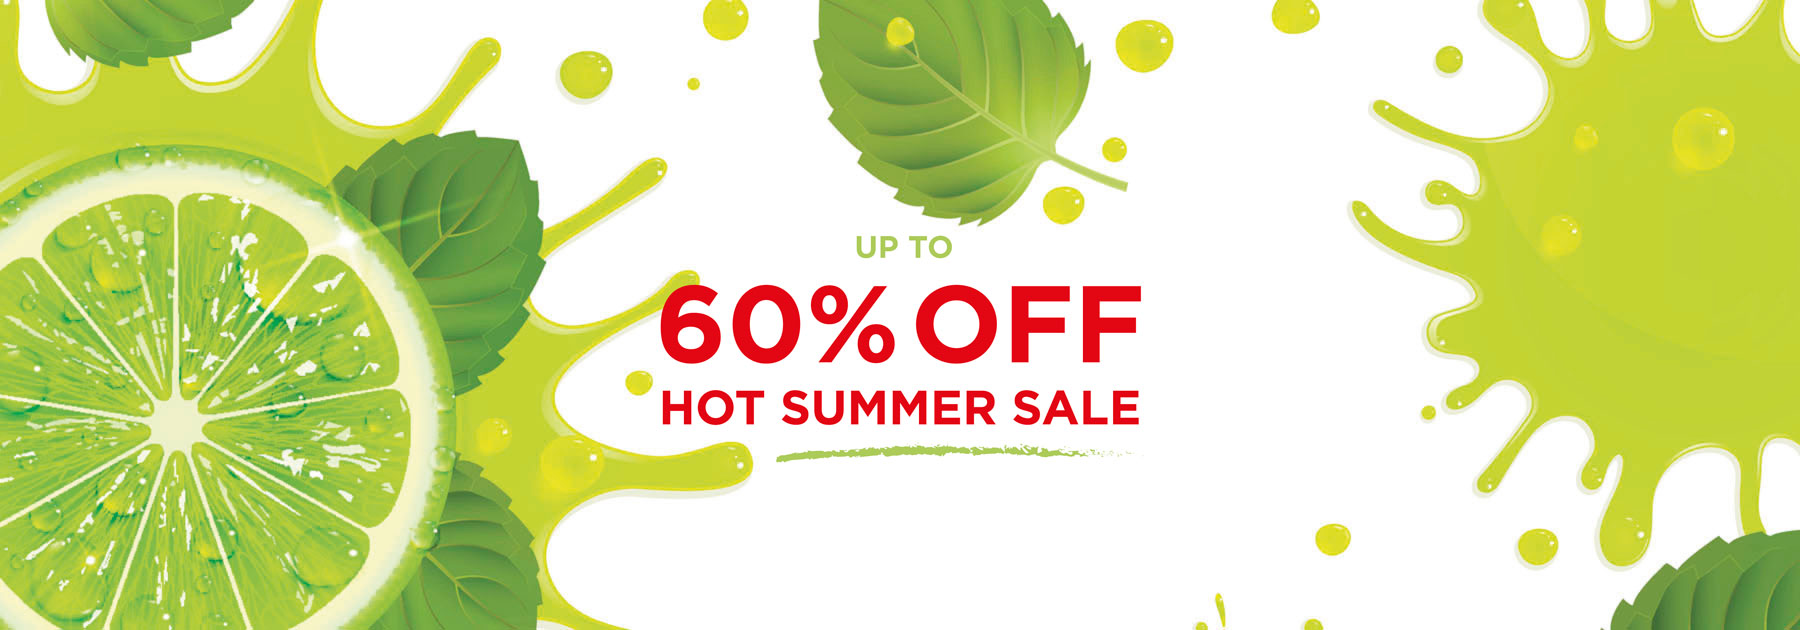 summer, sale, discounts, promotions, offers